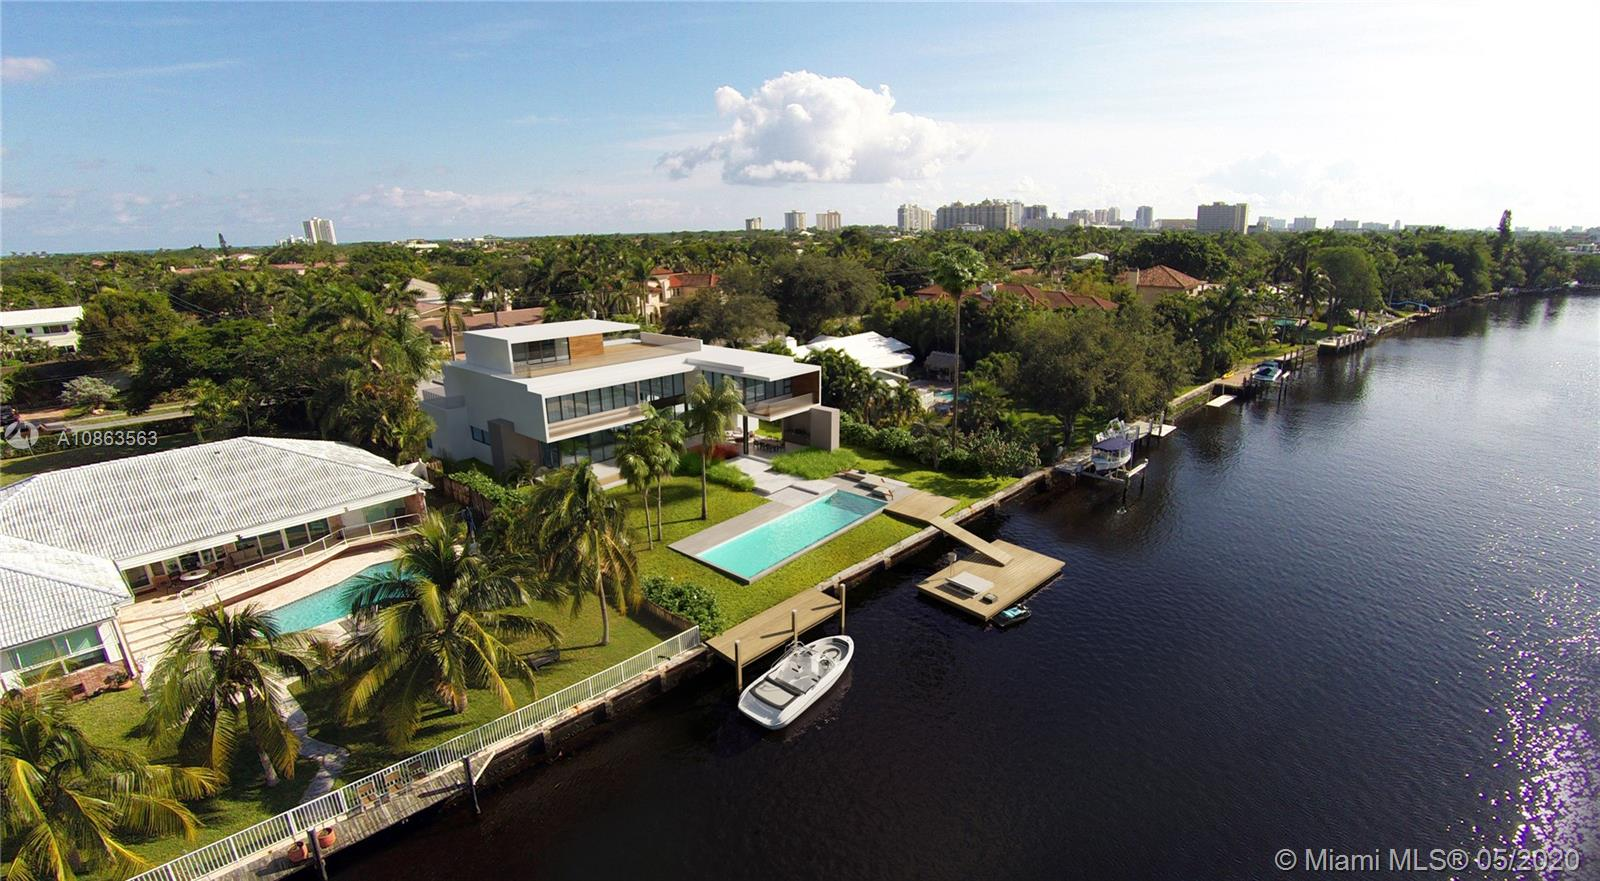 Unique, stunning, modern estate. 100 ft water frontage with panoramic views and dock. Infinity pool with attached spa. This amazing waterfront residence built in the established Coral Ridge neighborhood at 1529 Middle River Drive, Fort Lauderdale, Florida. The new home, designed in a contemporary style architecture, will be a 3-story structure with 7,700 square feet of living space that will include six bedrooms with a detached, 3-car garage, swimming pool, rooftop terrace and elevator. The house is under construction and will be deliver by sept 2020